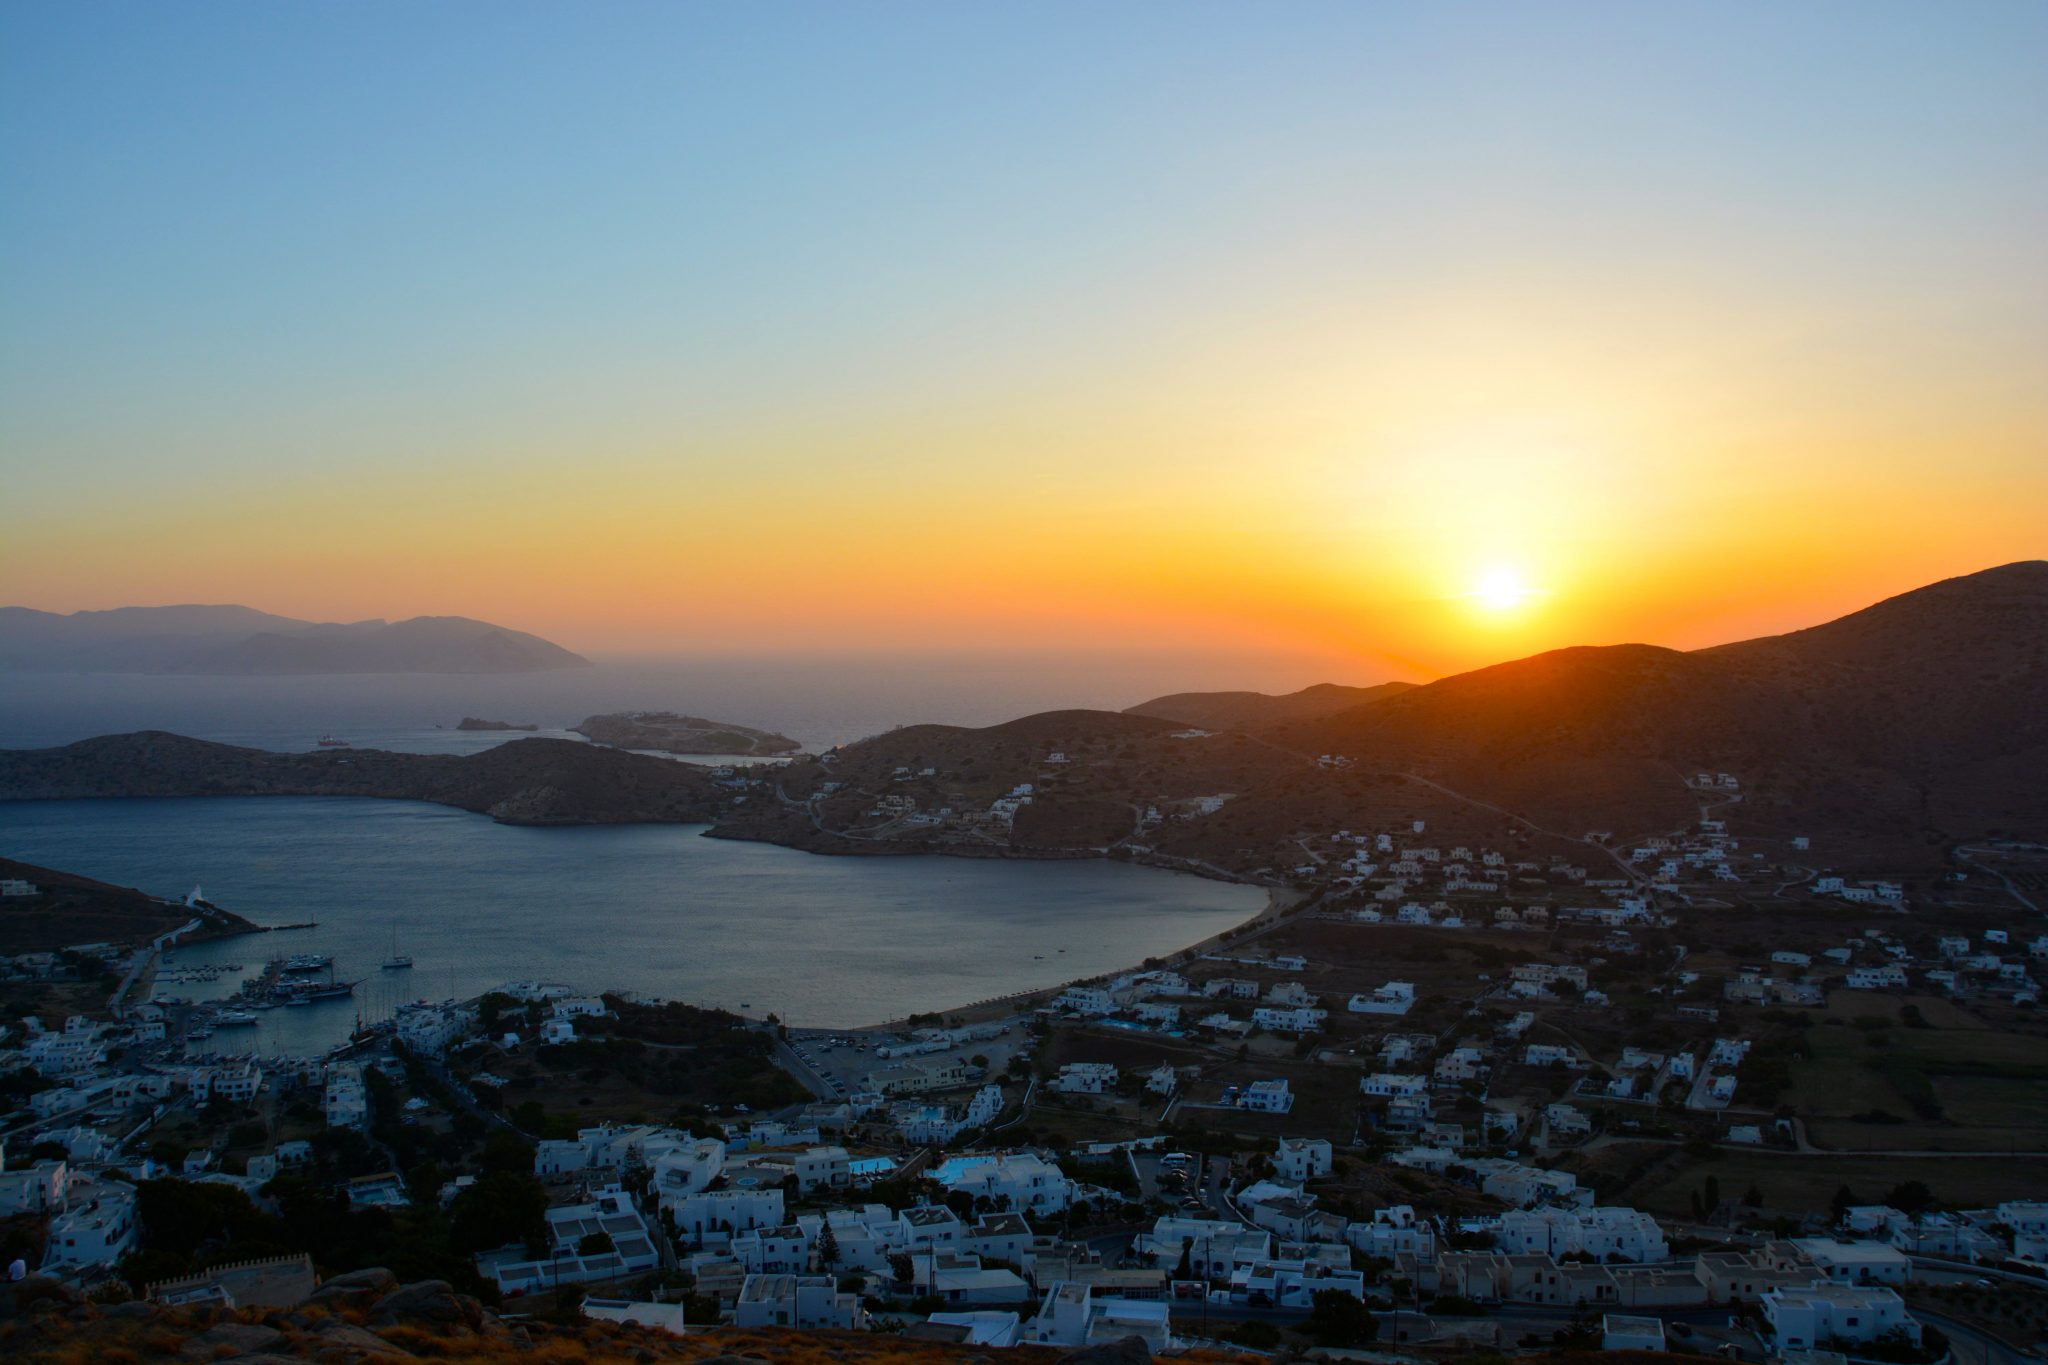 Beautiful sunset in the greek island, Ios.